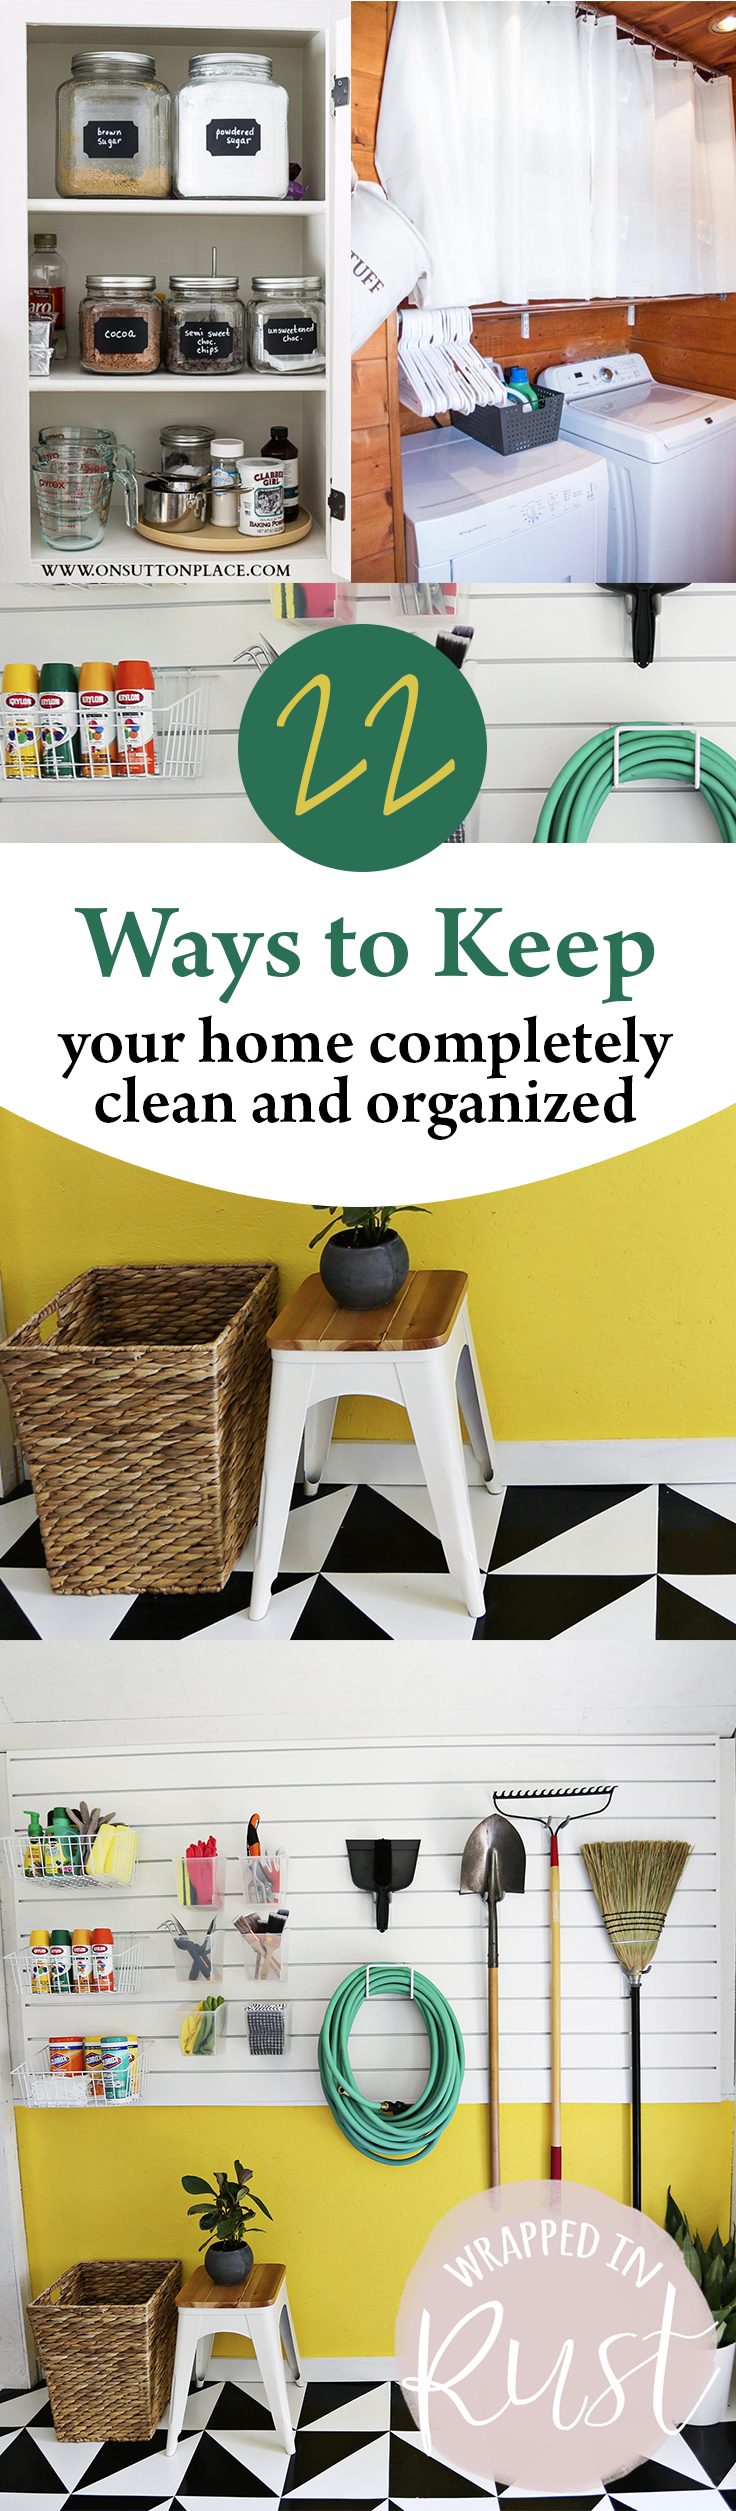 Clean Home, How to Easily Have a Clean Home, Home Cleaning, Home Cleaning Tricks, Home Cleaning TIps and Tricks, Home Organization, How to Organize Your Home, Easy Ways to Organize Your Home, Home Organization, Popular Pin